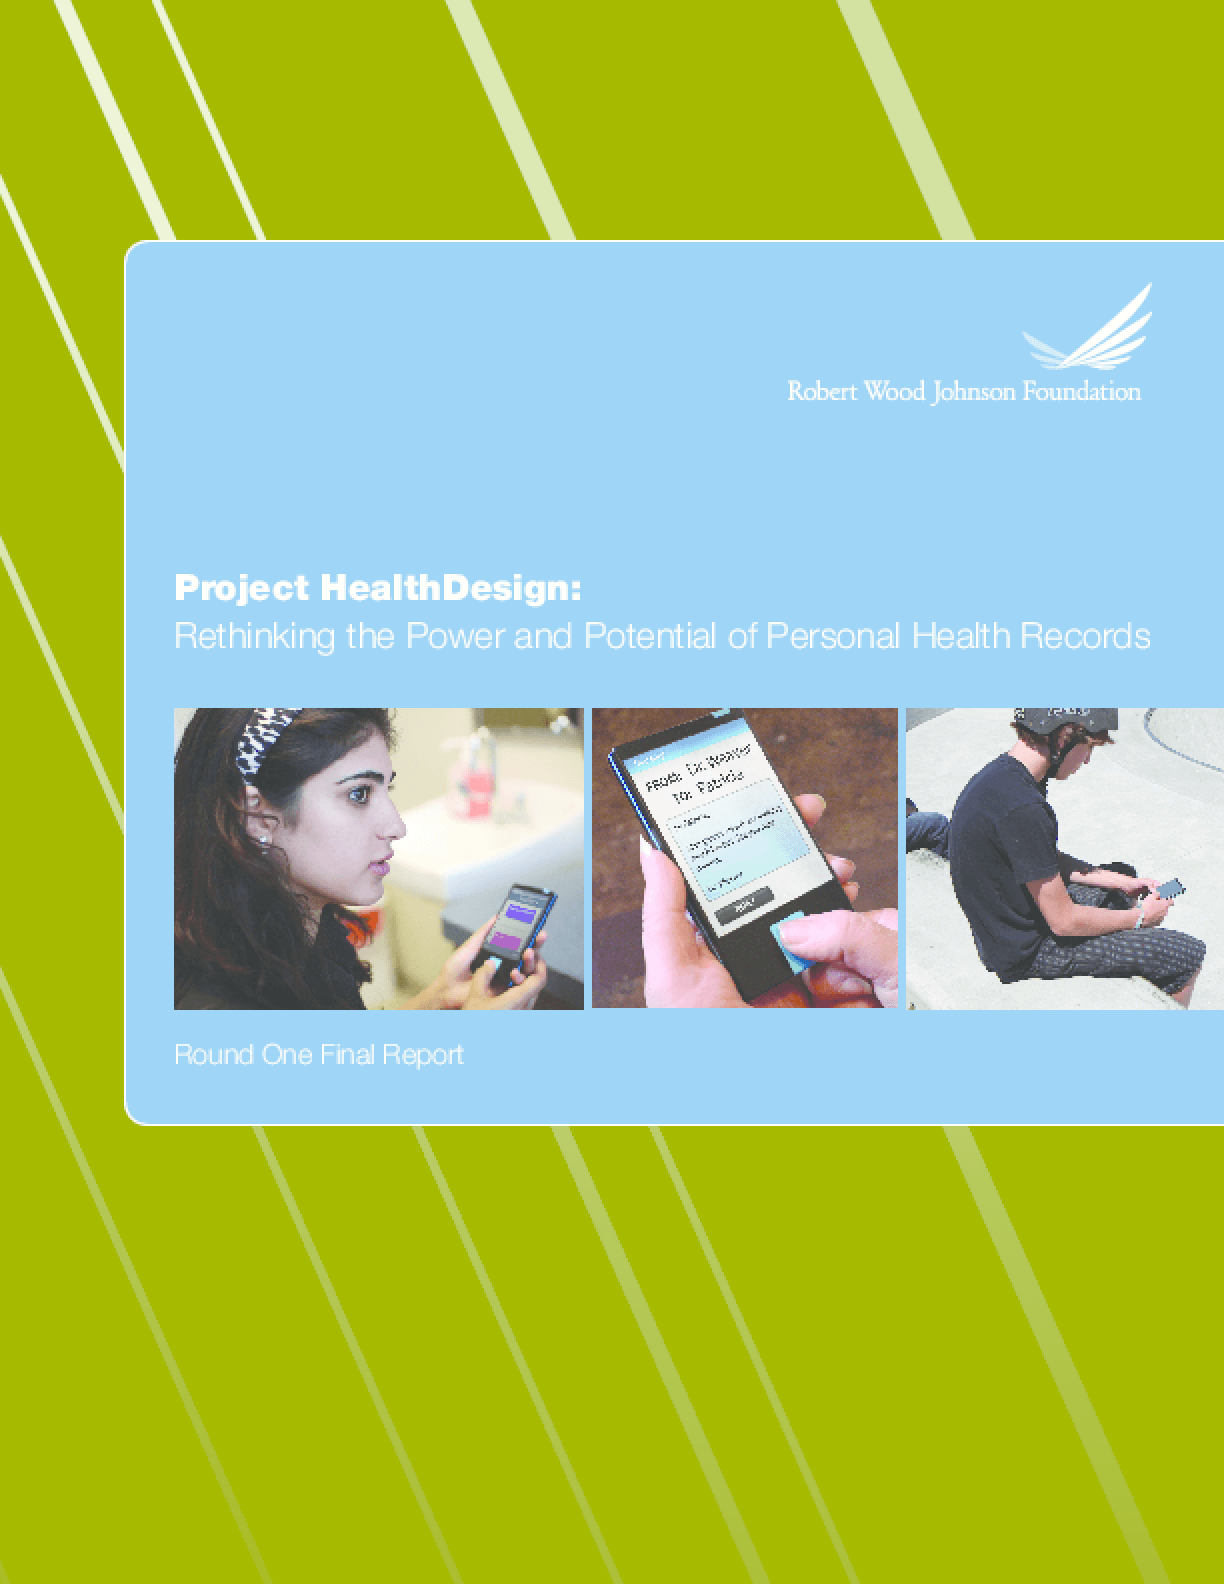 Project HealthDesign: Rethinking the Power and Potential of Personal Health Records: Round One Final Report